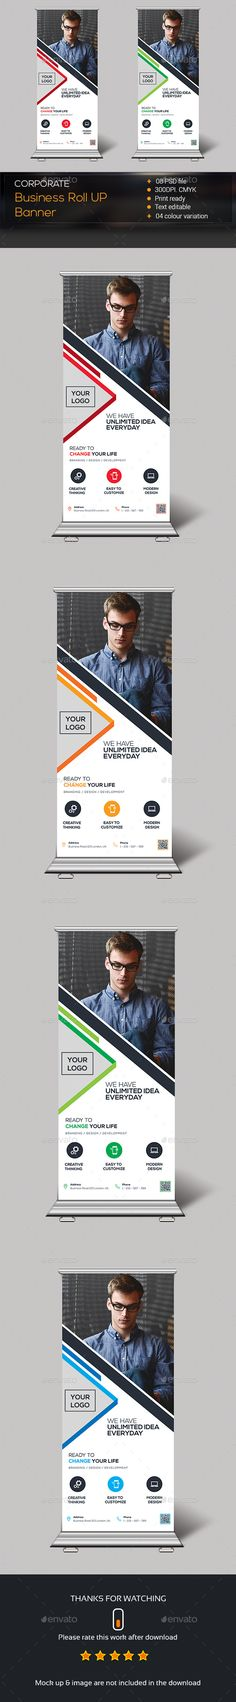 Buy Corporate Roll Up Banner by zeropixels on GraphicRiver. FEATURES: Easy Customizable and Editable Roll Up Banner in with bleed CMYK Color Design in 300 DPI Resolution. Creative Banners, Creative Design, Standing Banner Design, Banner Stands, Email Newsletters, Profile Design, Media Design, Poster On, Design Reference